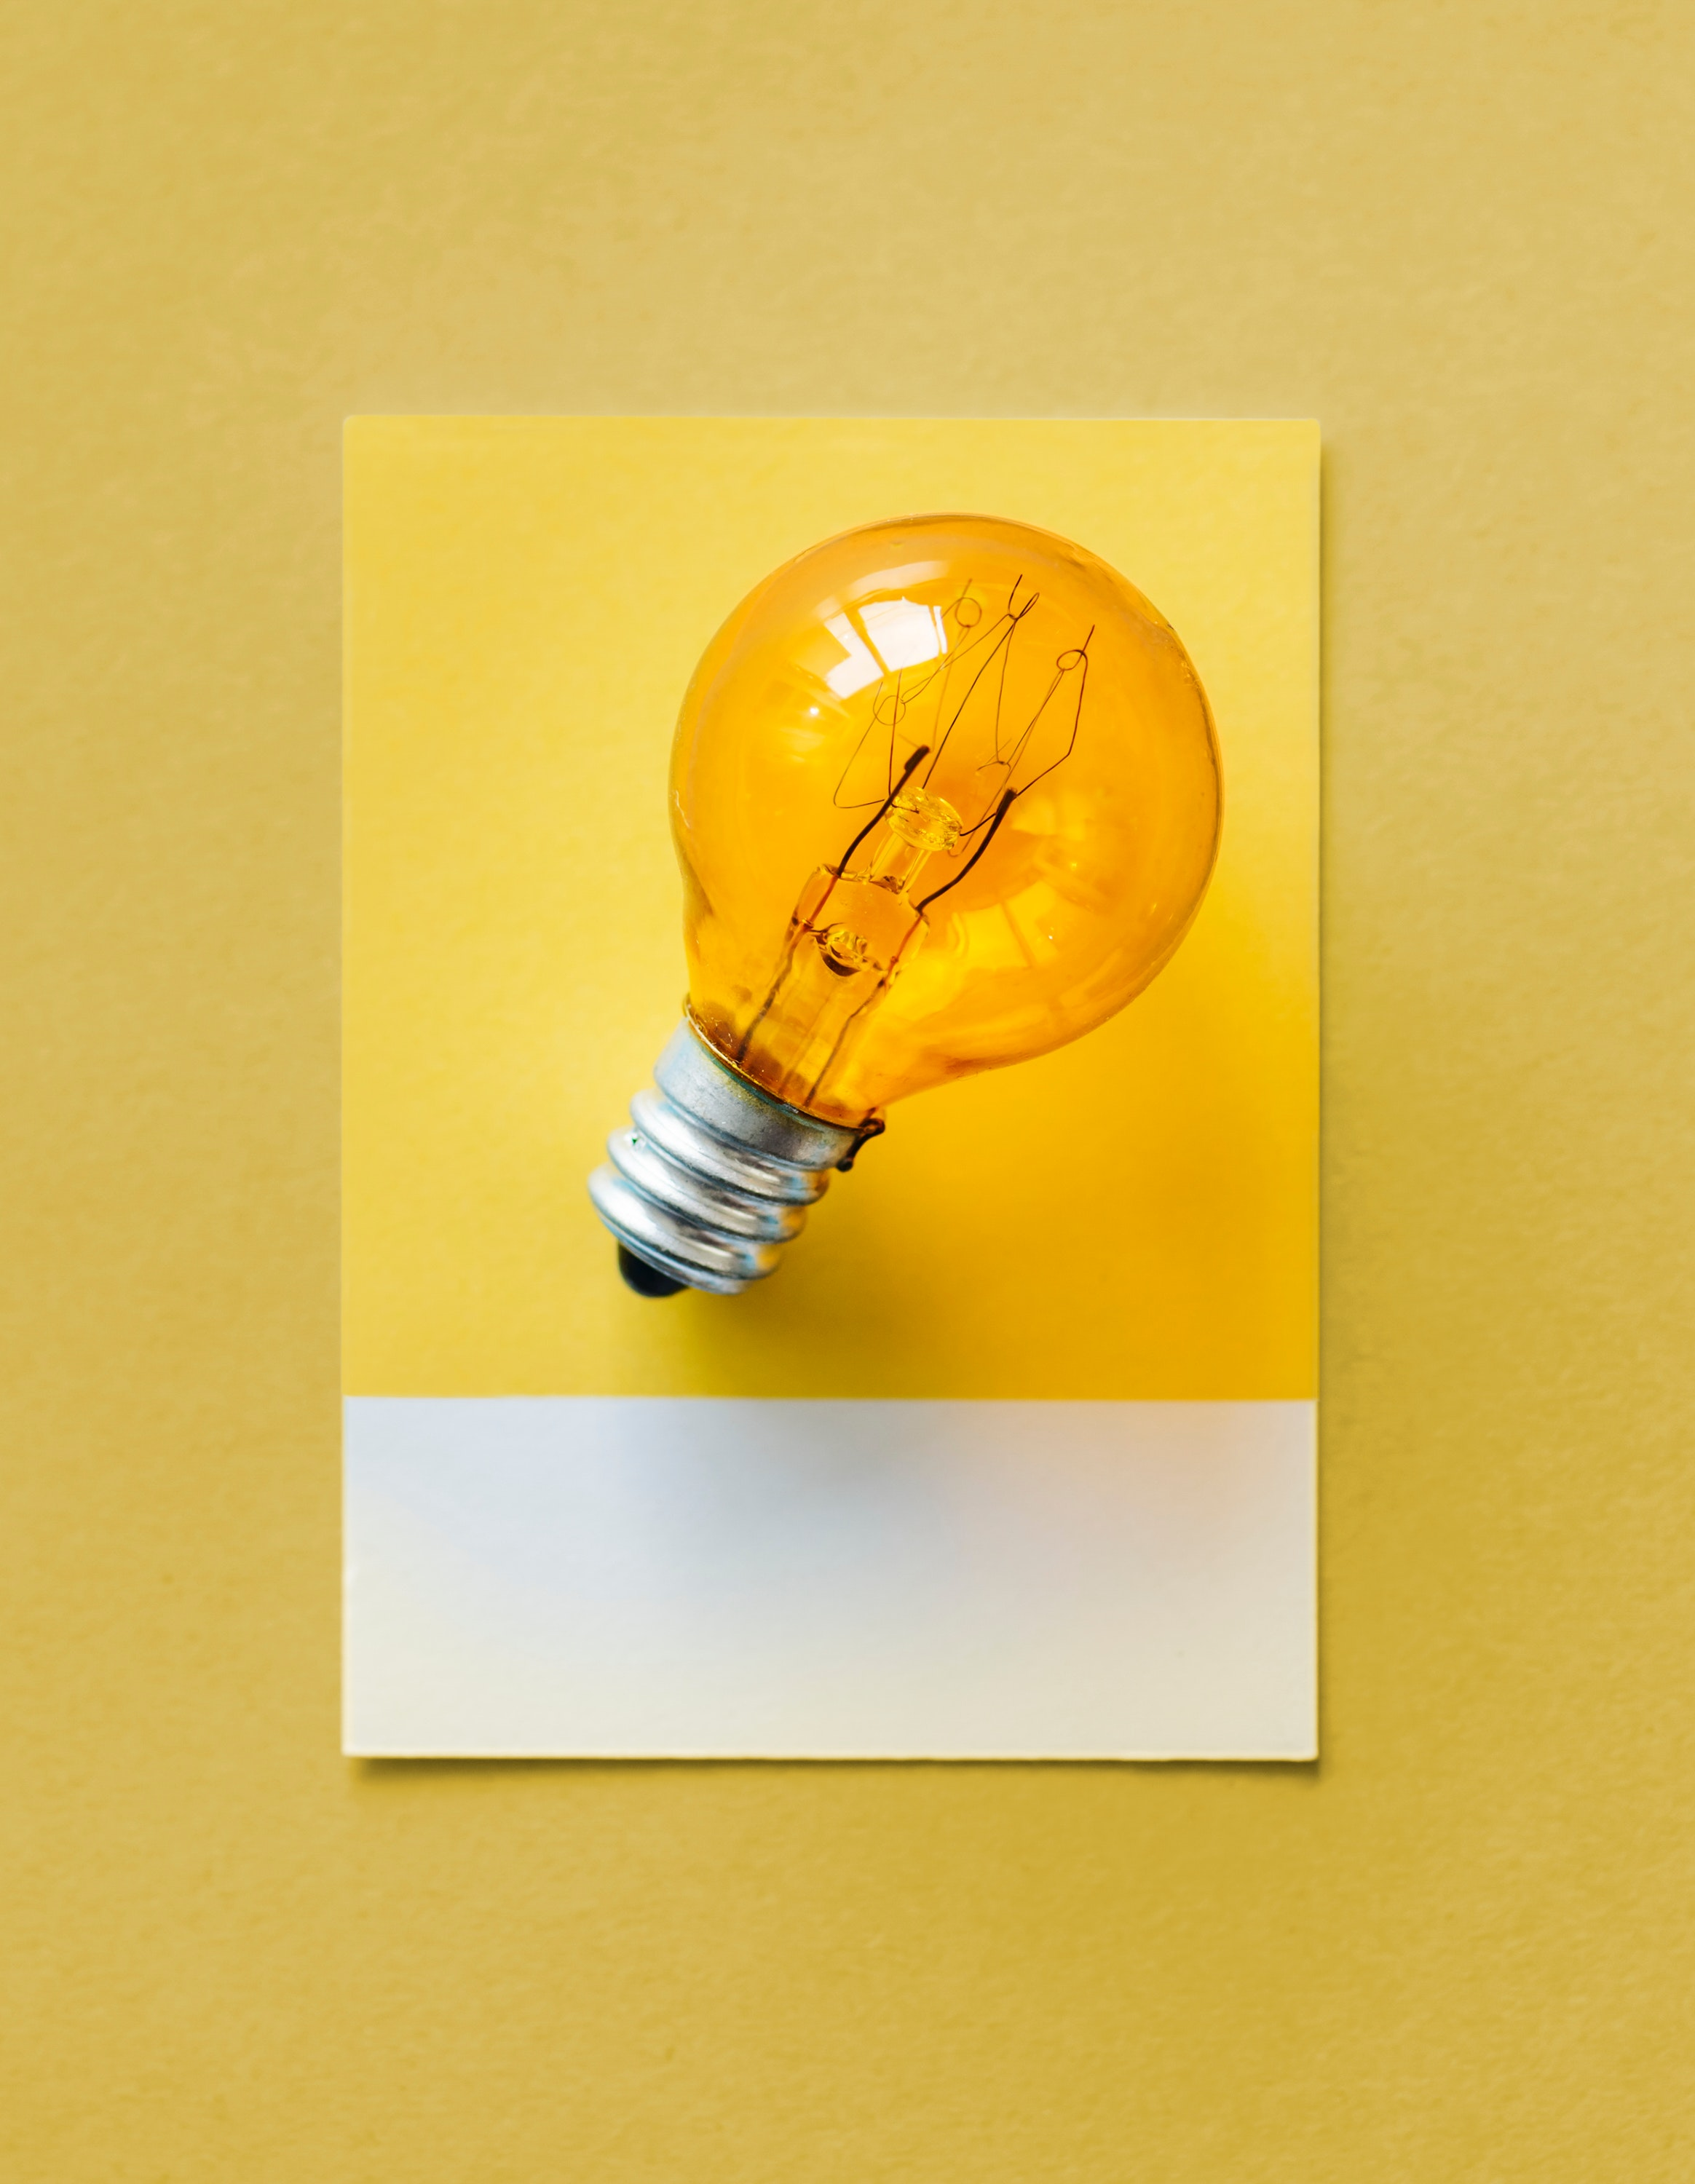 bulb-card-close-up-1083626.jpg